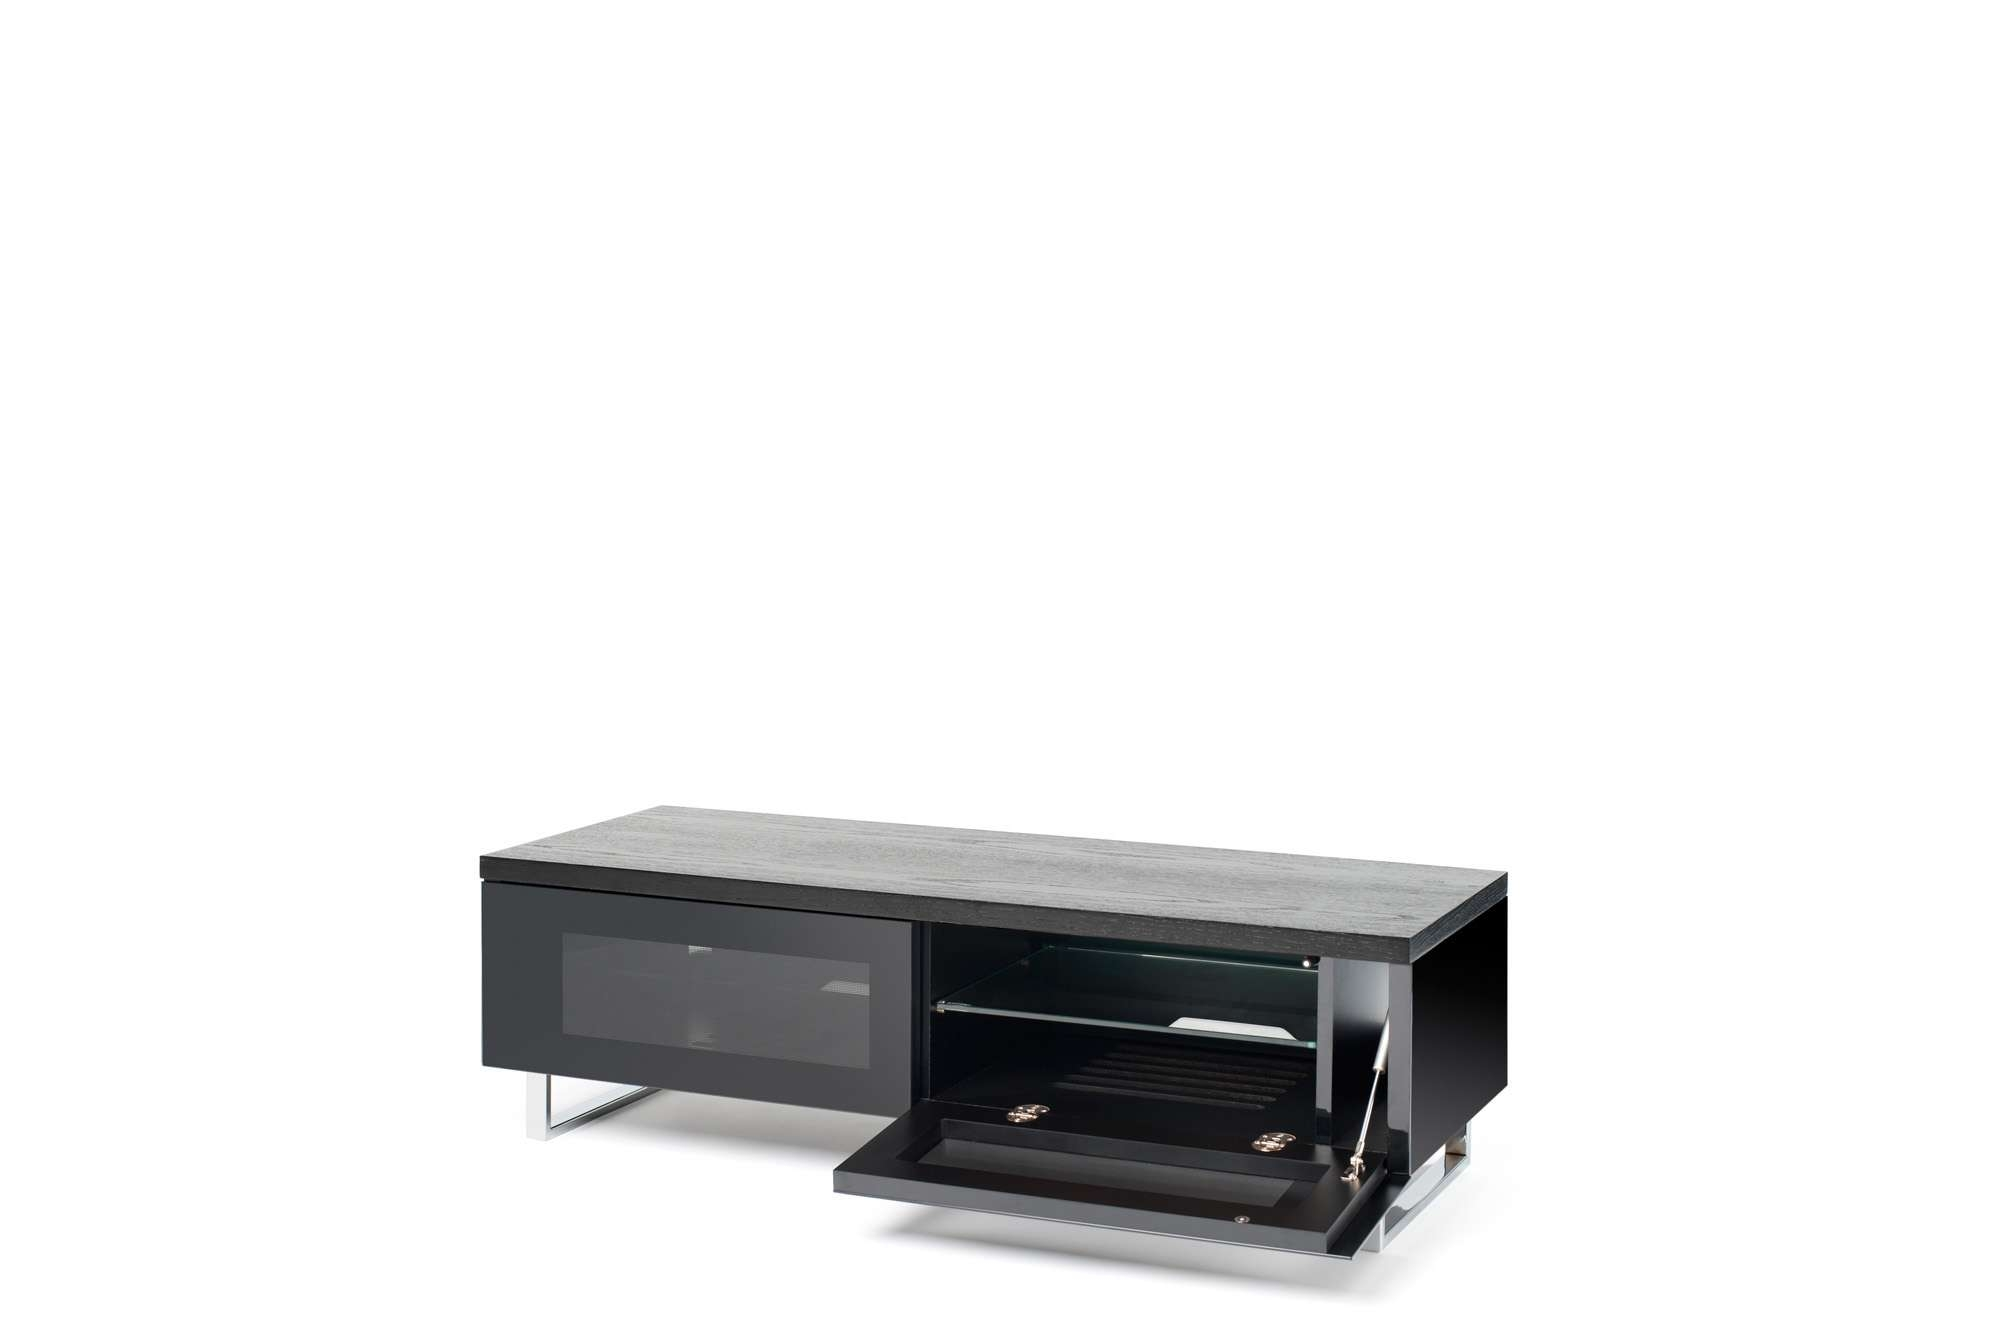 Techlink Pm160b 'panorama' 160cm Tv Stand Black | Hbh Woolacotts Inside Panorama Tv Stands (View 17 of 20)